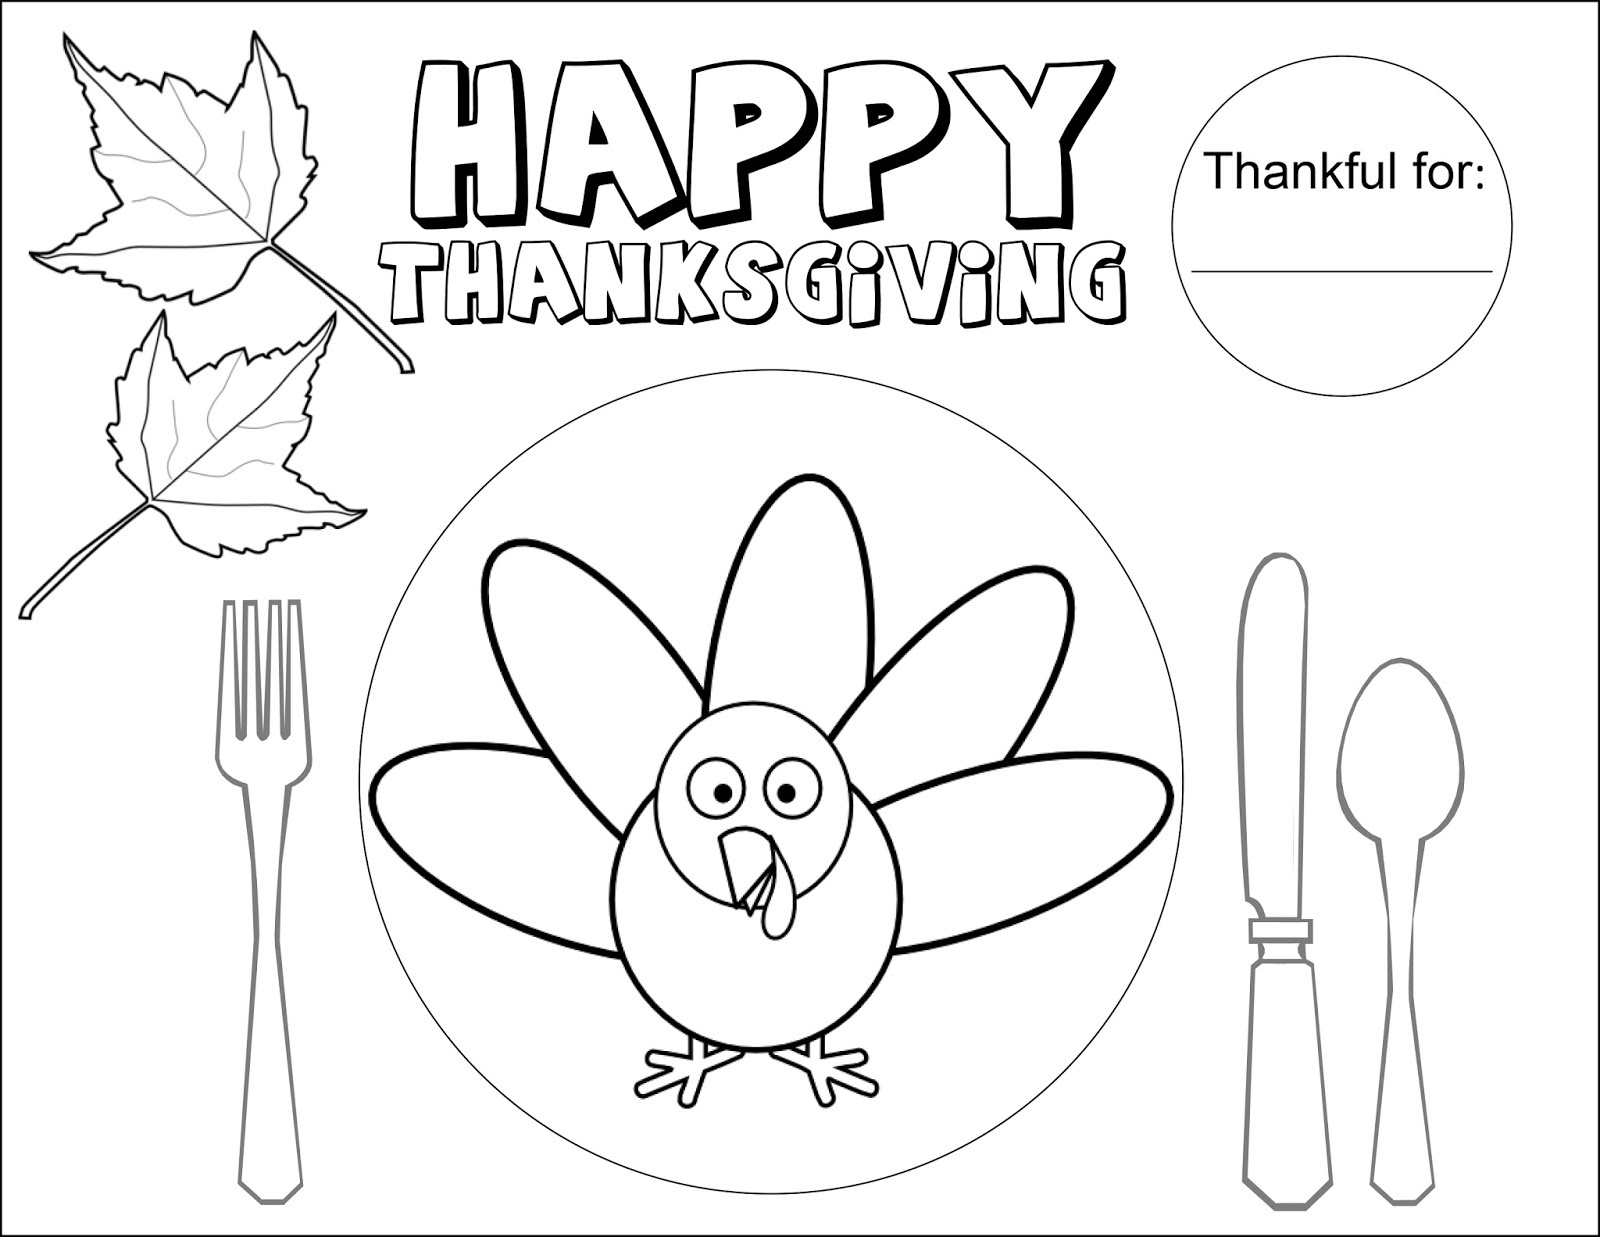 Coloring Placemats For Thanksgiving – Happy Easter & Thanksgiving 2018 - Free Printable Thanksgiving Coloring Placemats